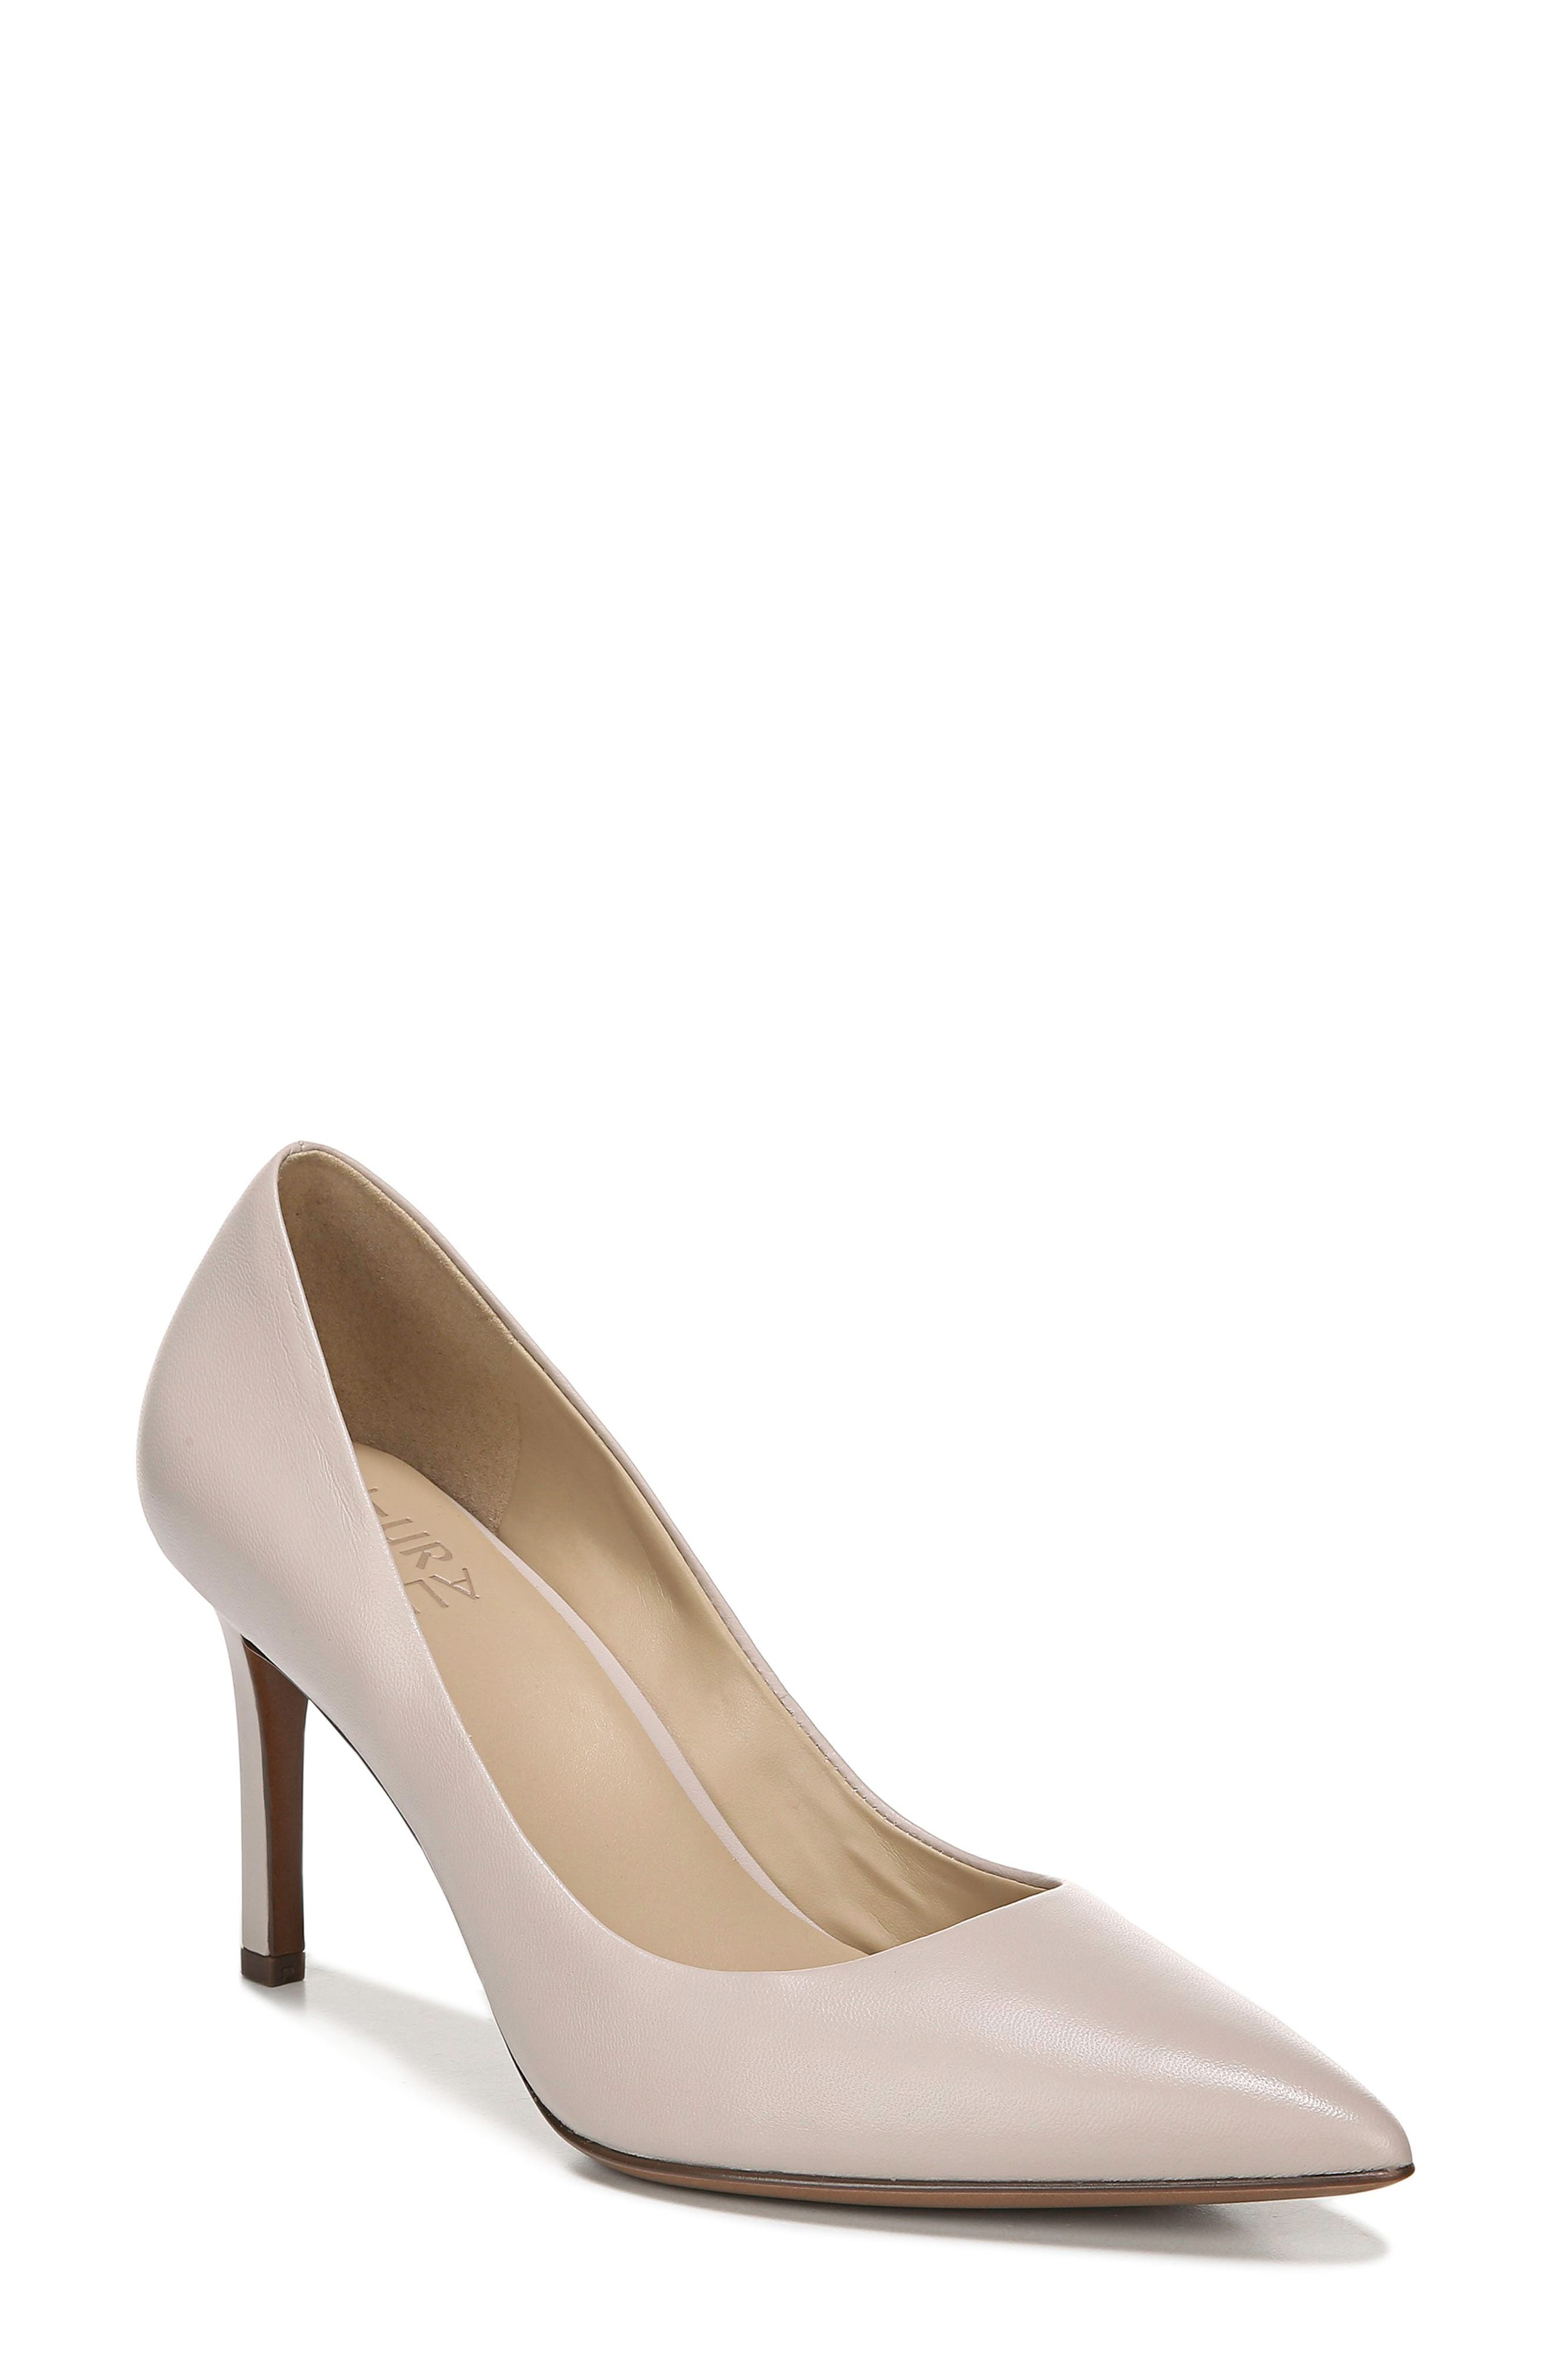 Naturalizer Anna Pump, Beige